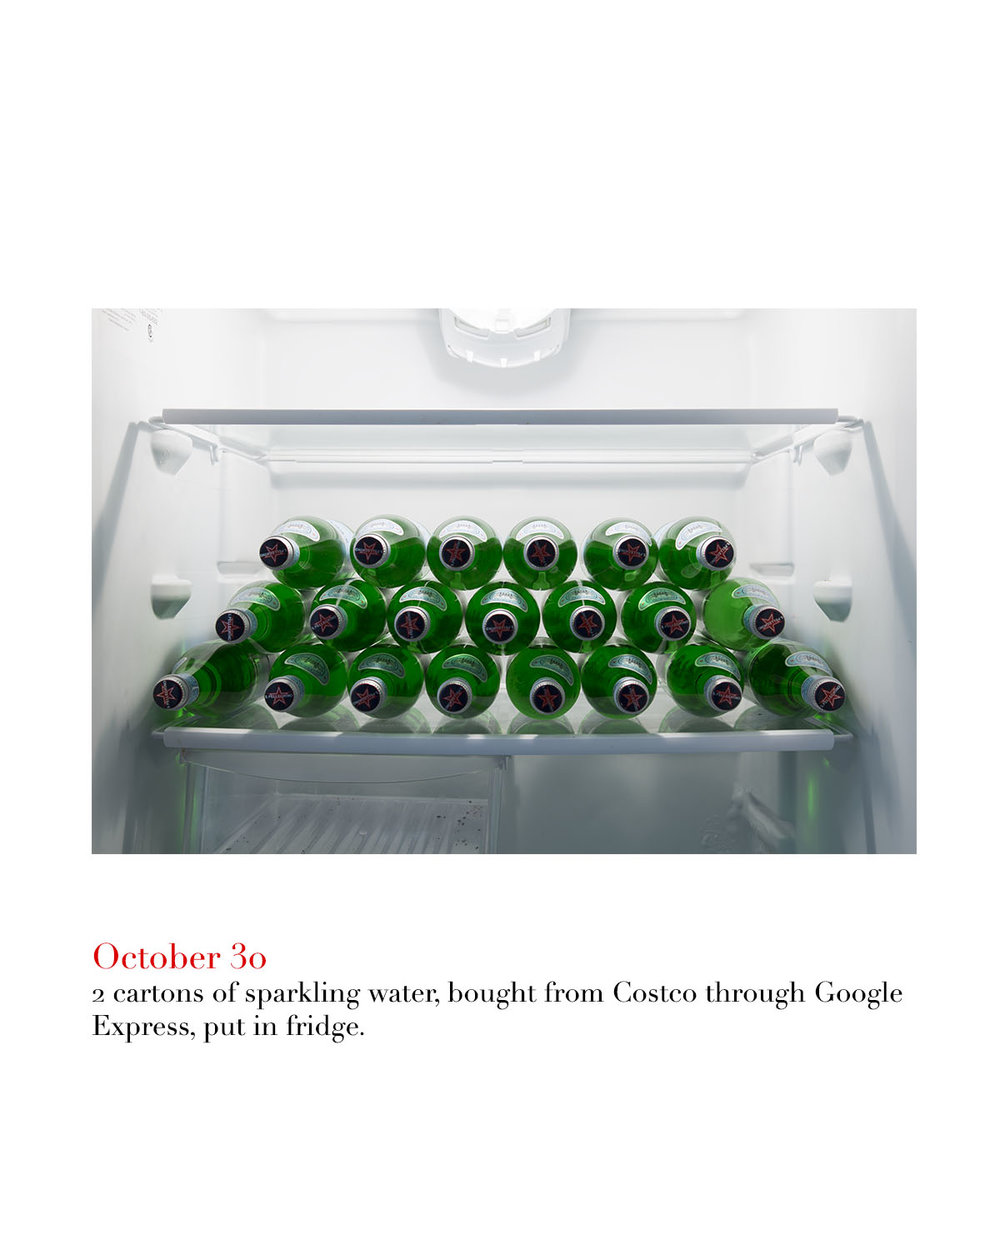 oct 30 sparkling water copy.jpg